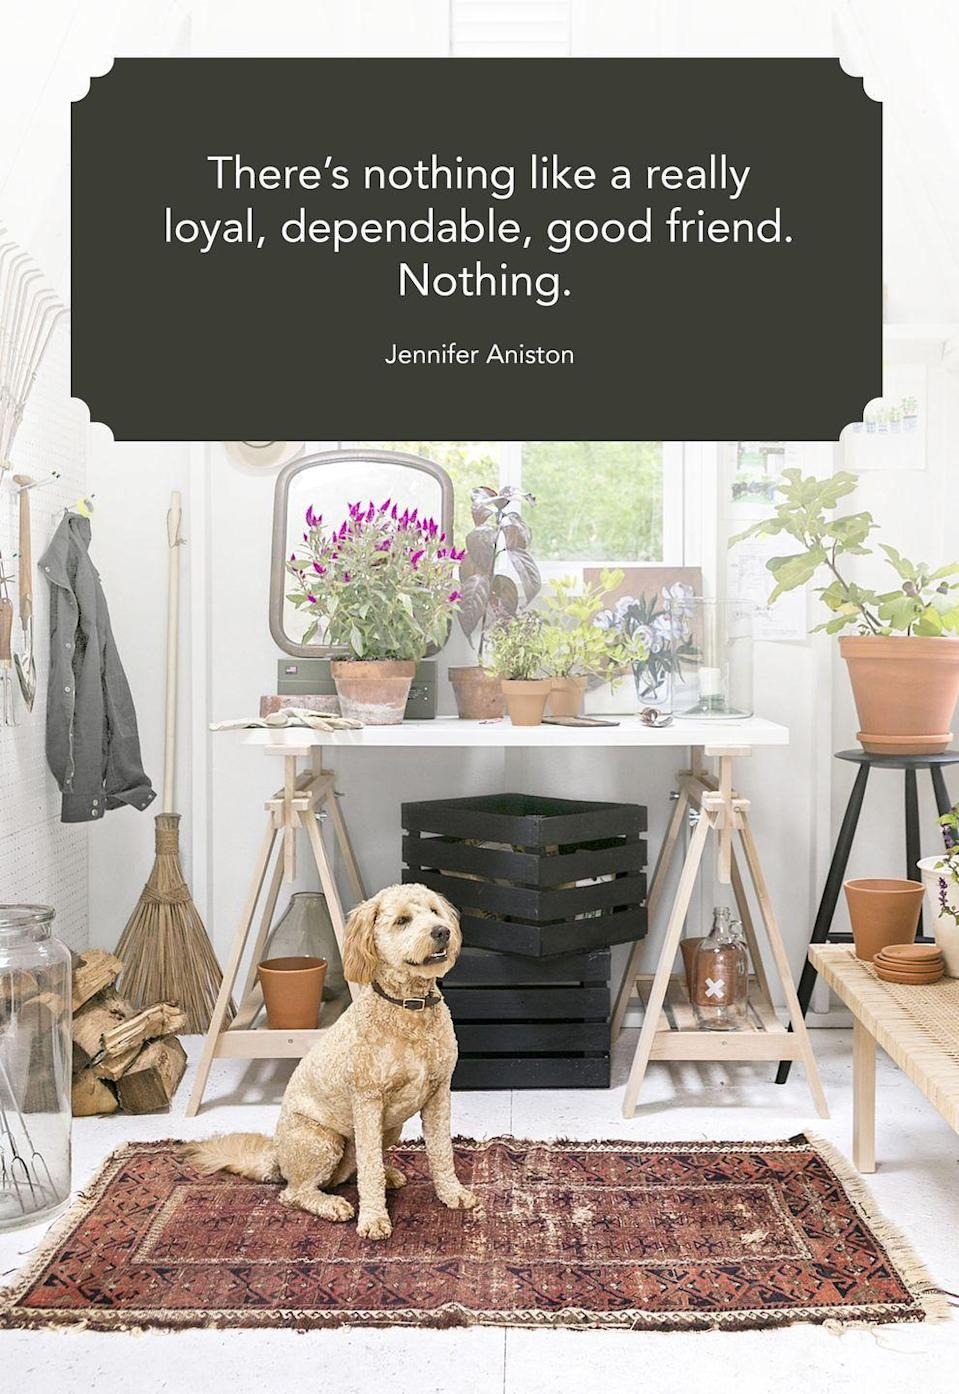 "<p>""There's nothing like a really loyal, dependable, good friend. Nothing.""</p>"